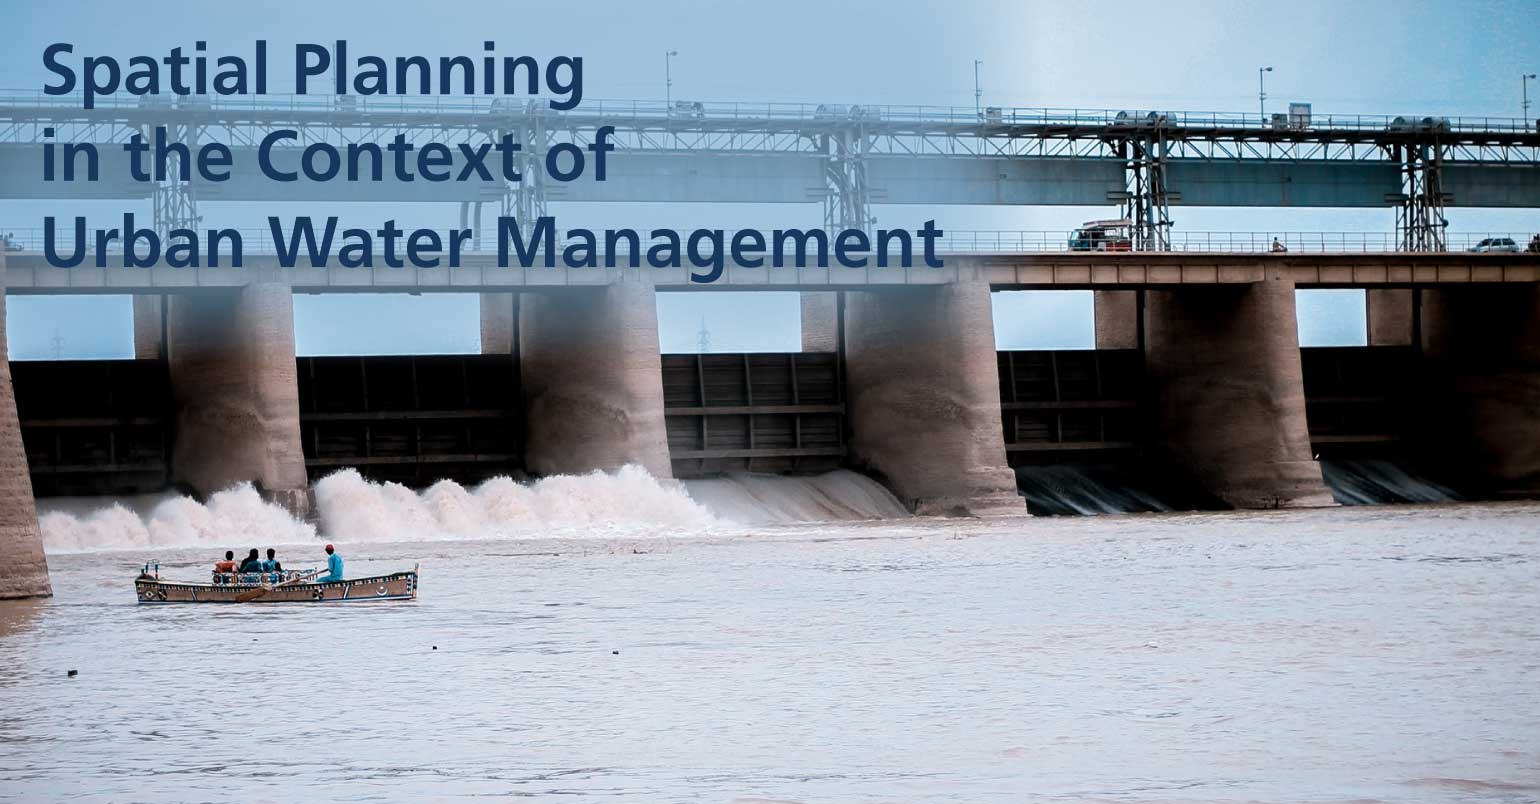 Spatial Planning in the Context of Urban Water Management